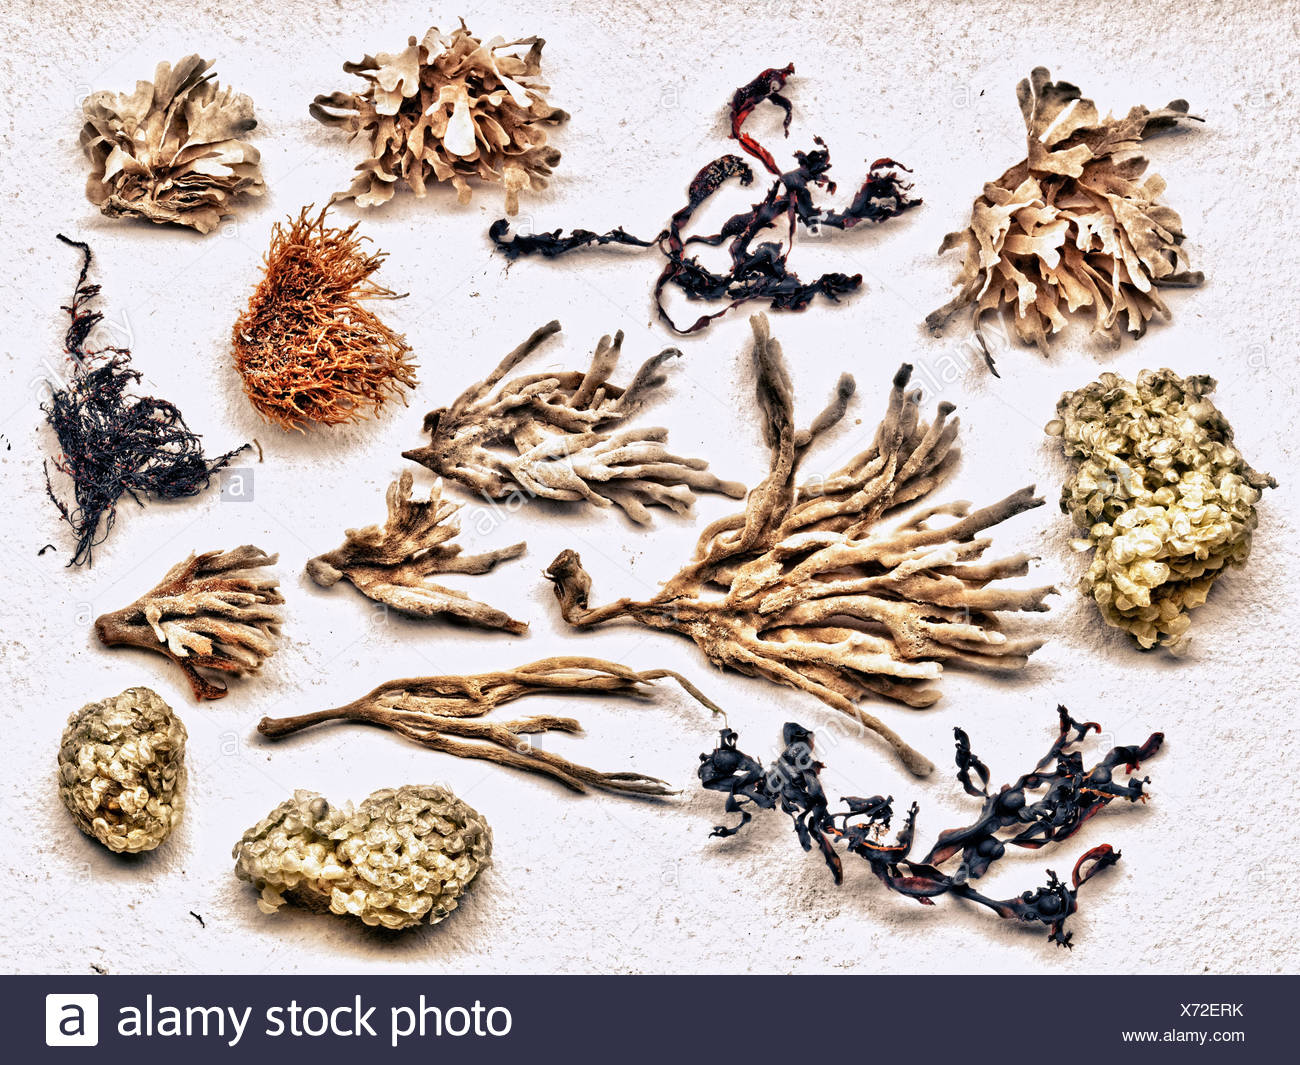 Dried sea plants - Stock Image